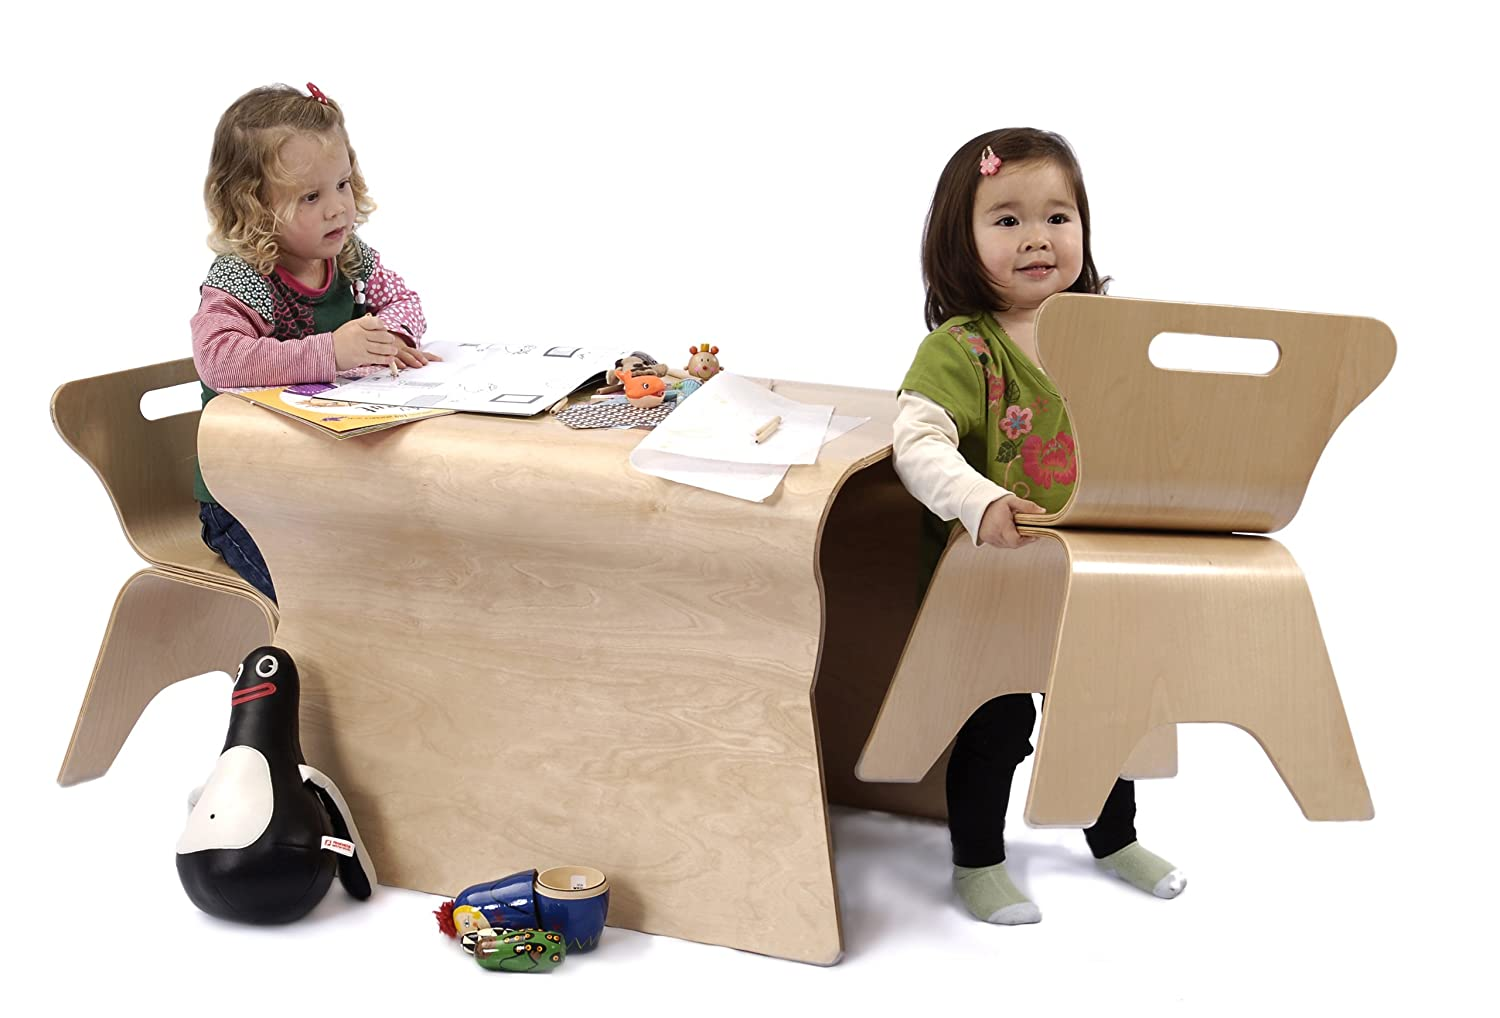 Superb Amazon.com : Bloom Otto Table And Chairs, Natural : Nursery Furniture Sets  : Baby